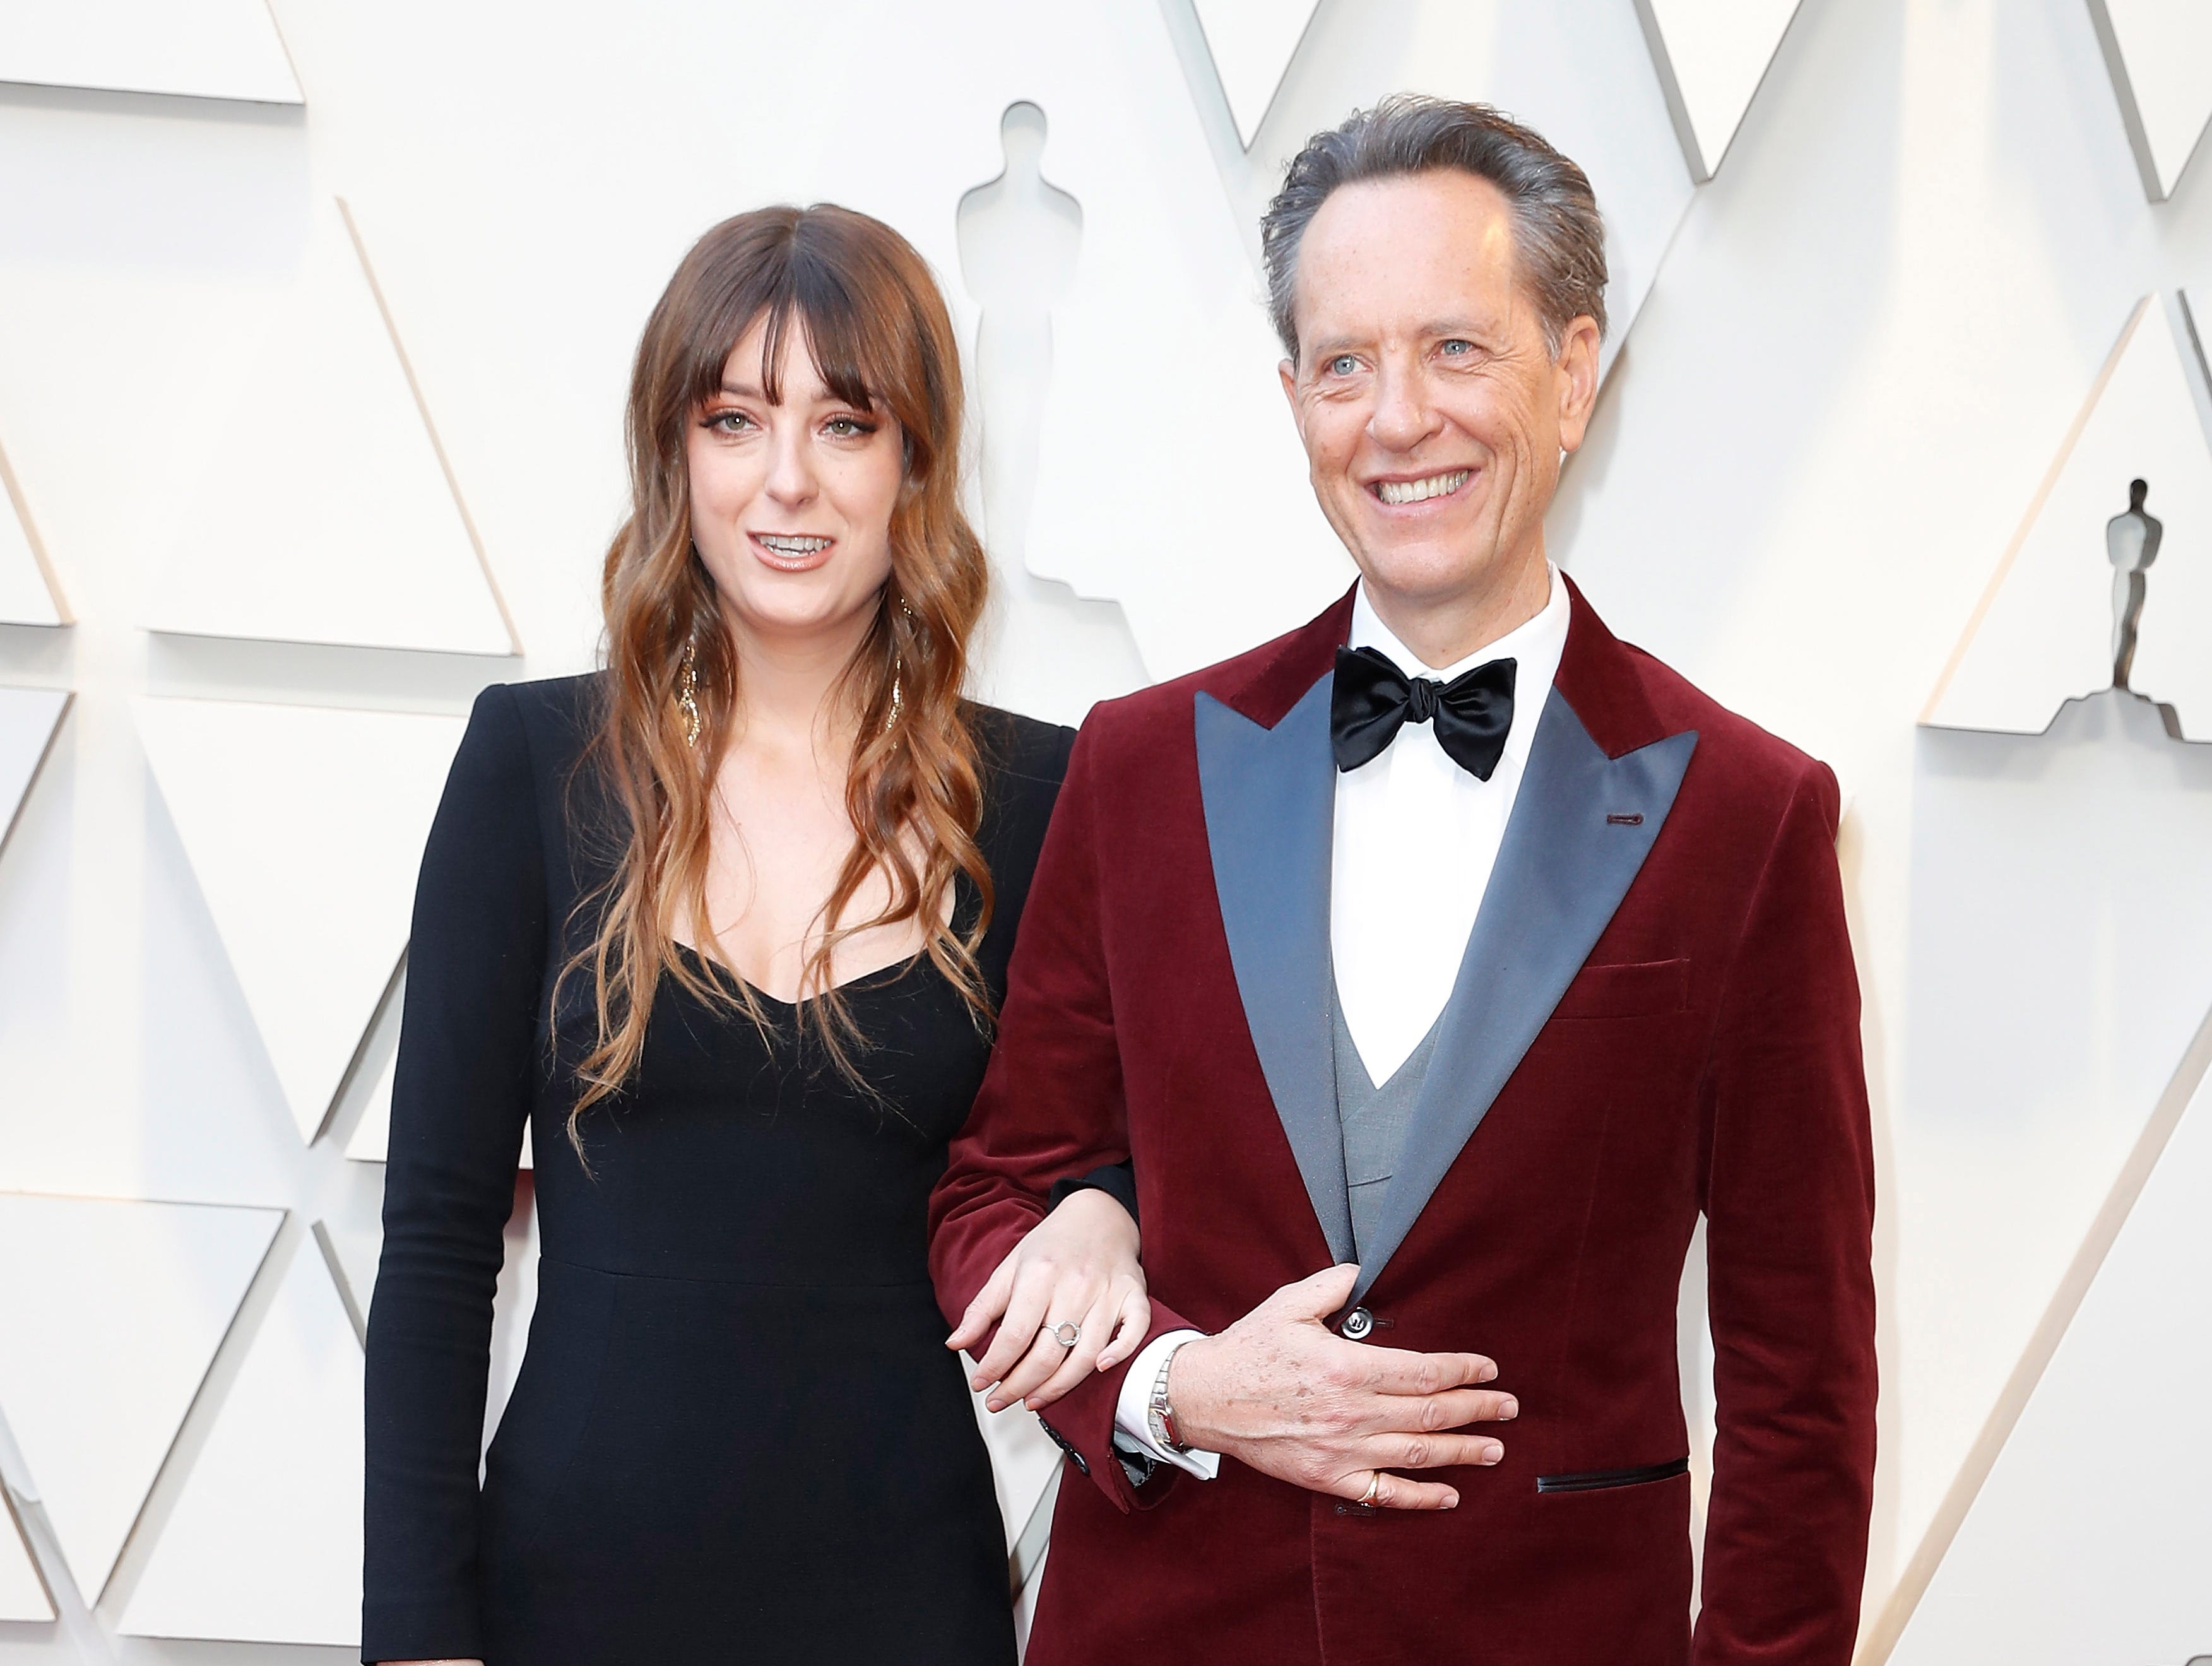 epa07394385 Olivia Grant (L) and Richard E Grant (R) arrive for the 91st annual Academy Awards ceremony at the Dolby Theatre in Hollywood, California, USA, 24 February 2019. The Oscars are presented for outstanding individual or collective efforts in 24 categories in filmmaking.  EPA-EFE/ETIENNE LAURENT ORG XMIT: MCX079